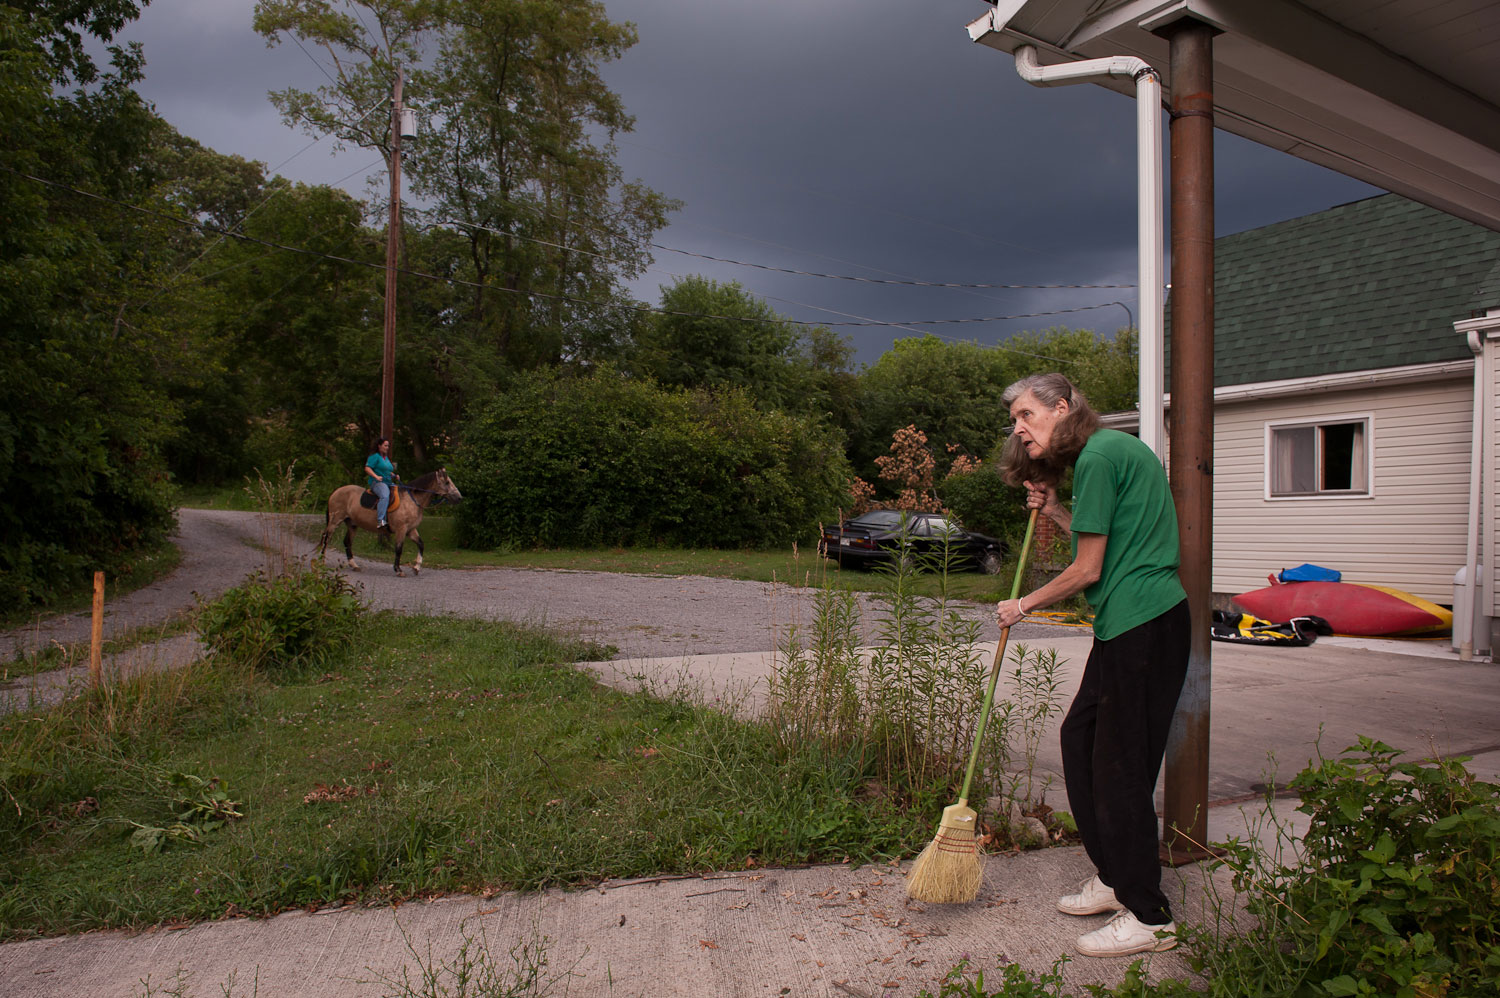 Eleanor Copeman sweeps the porch outside the family home as her daughter rides her horse toward the house in Elkins, West Virginia, on July 14, 2012.